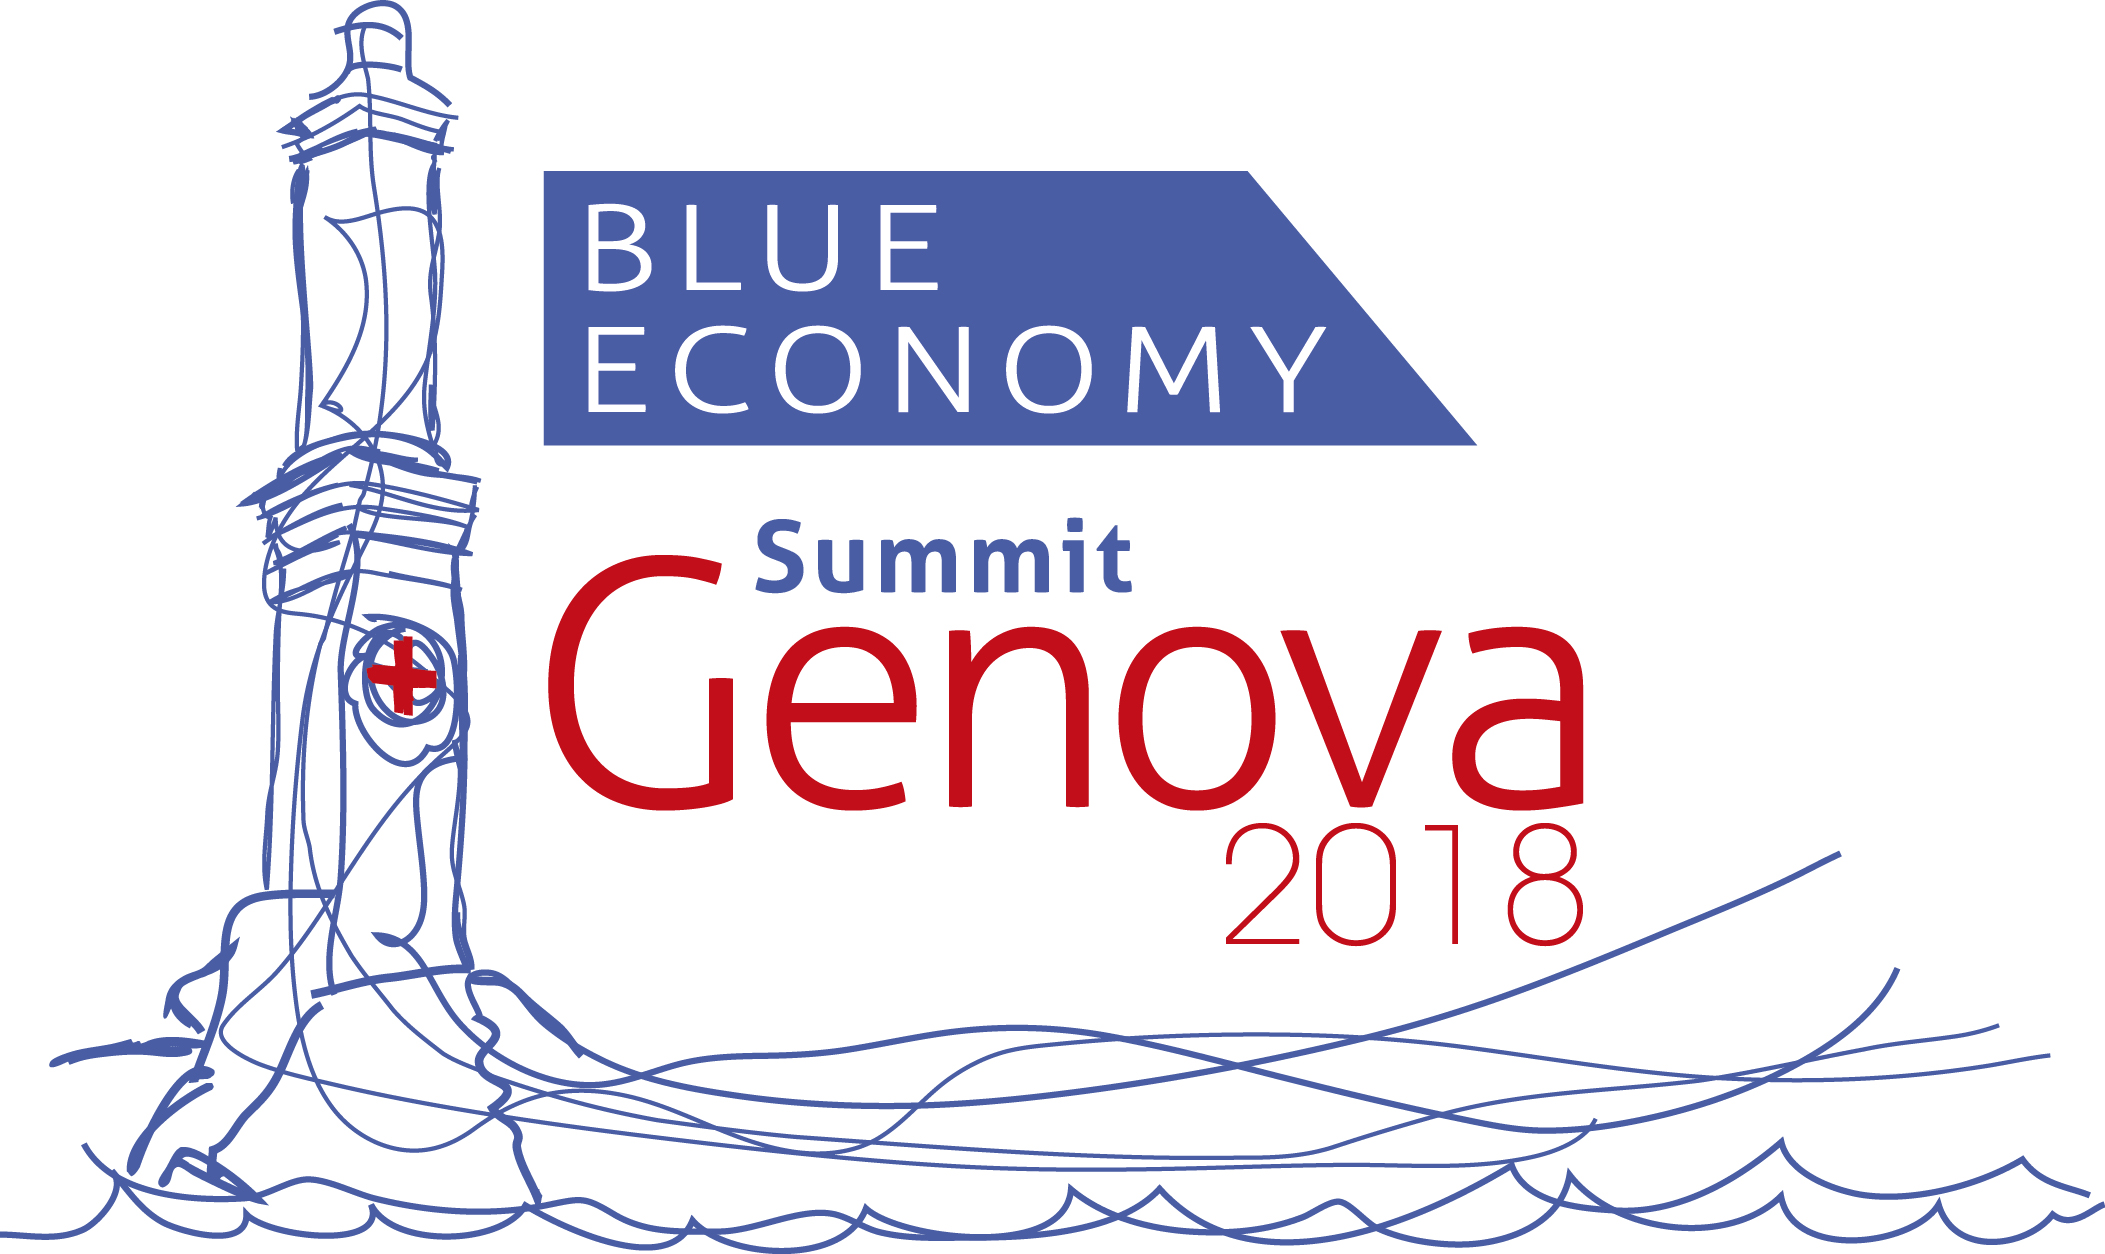 Blue Economy Summit 2018